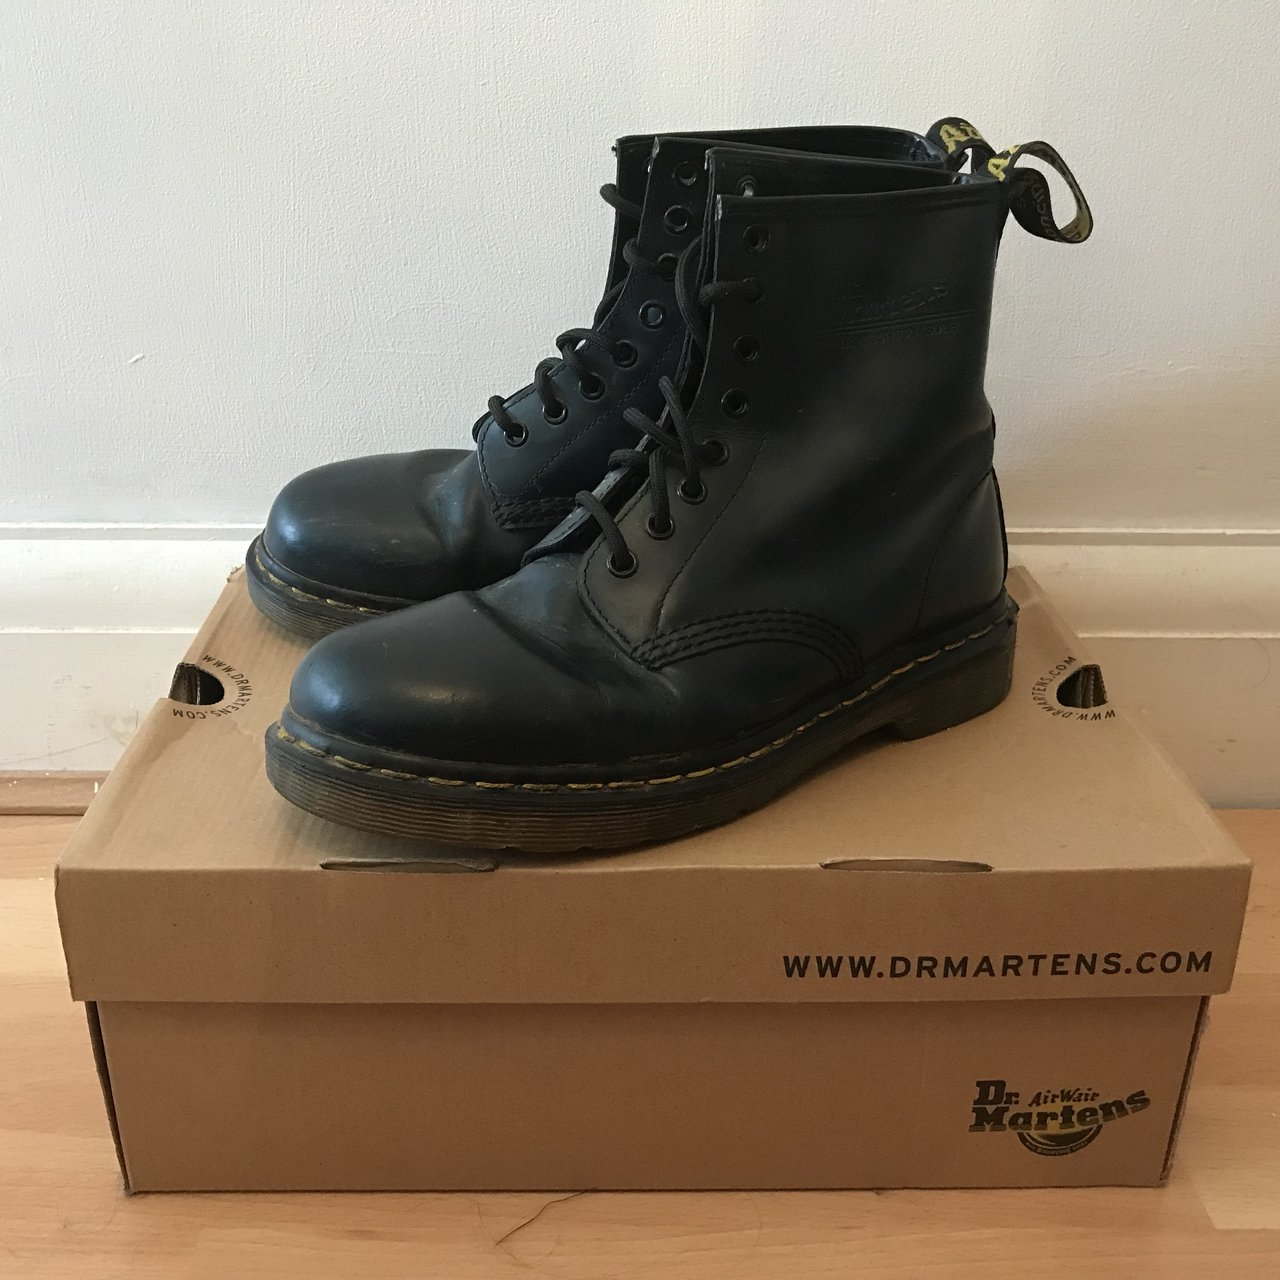 Dr Martens Navy Boots in original box! Size 6 Boots are in - Depop 11a0fbaa3b95